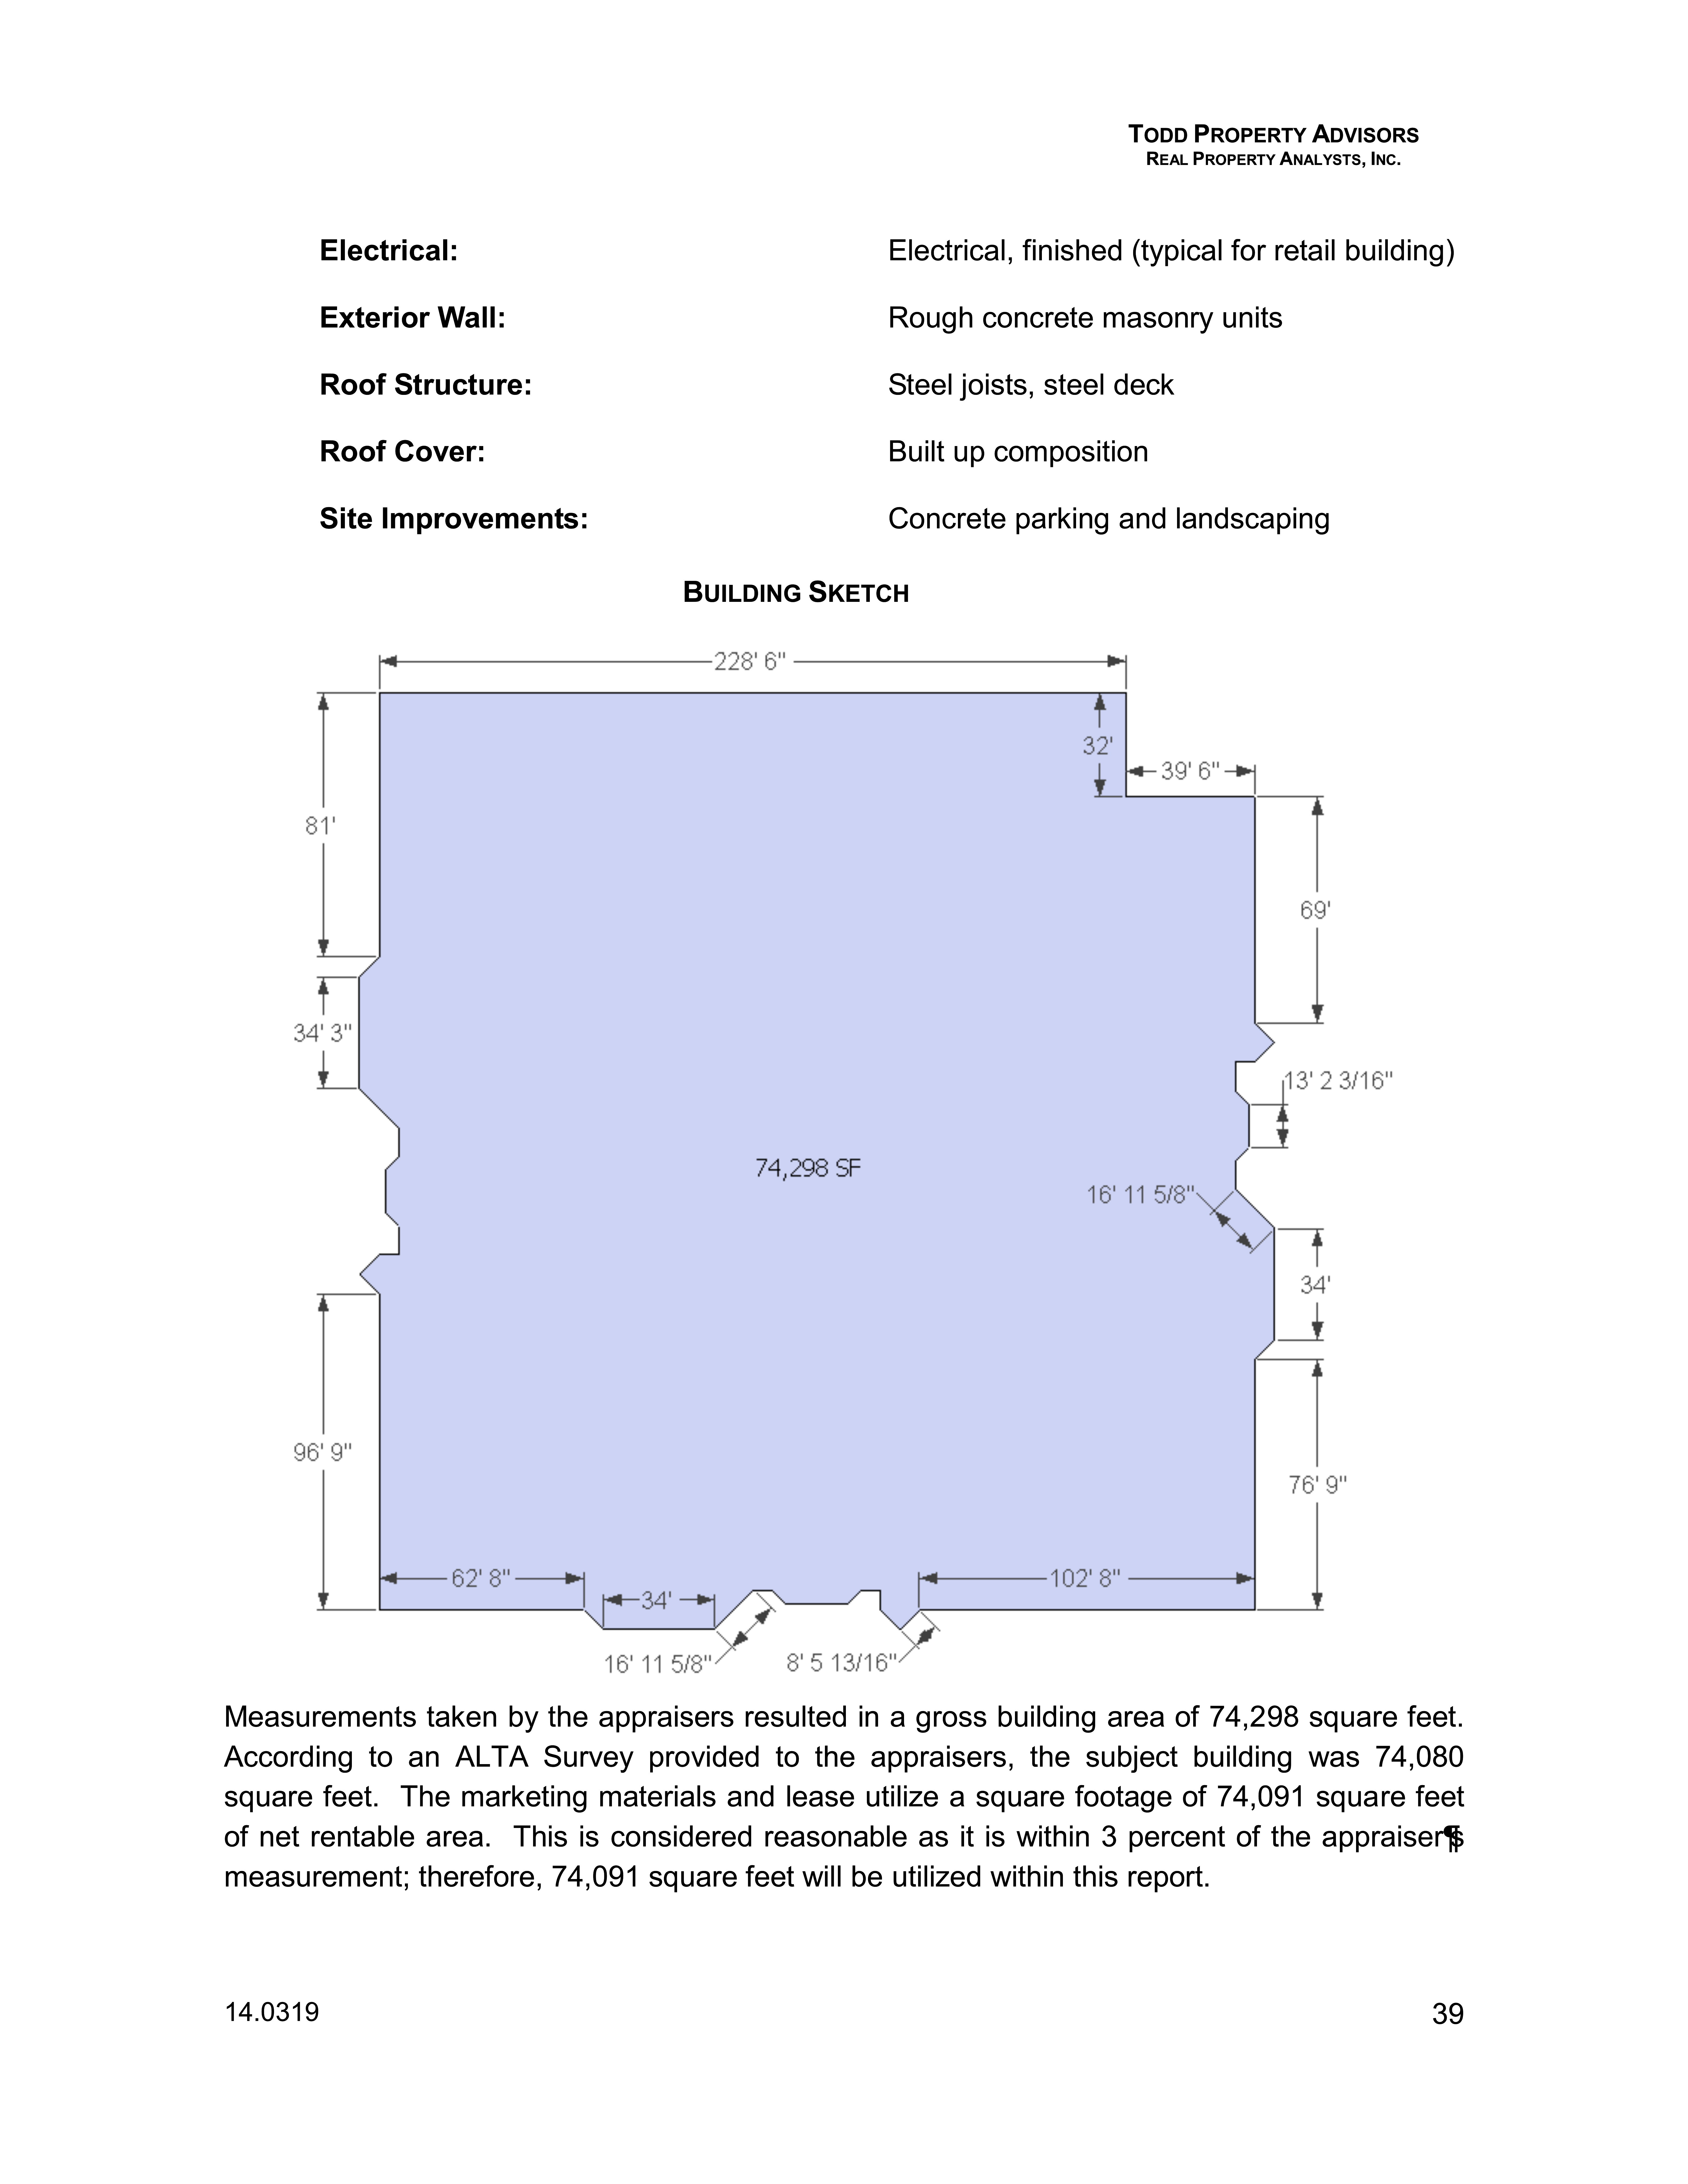 300 S Plano Rd: site plan